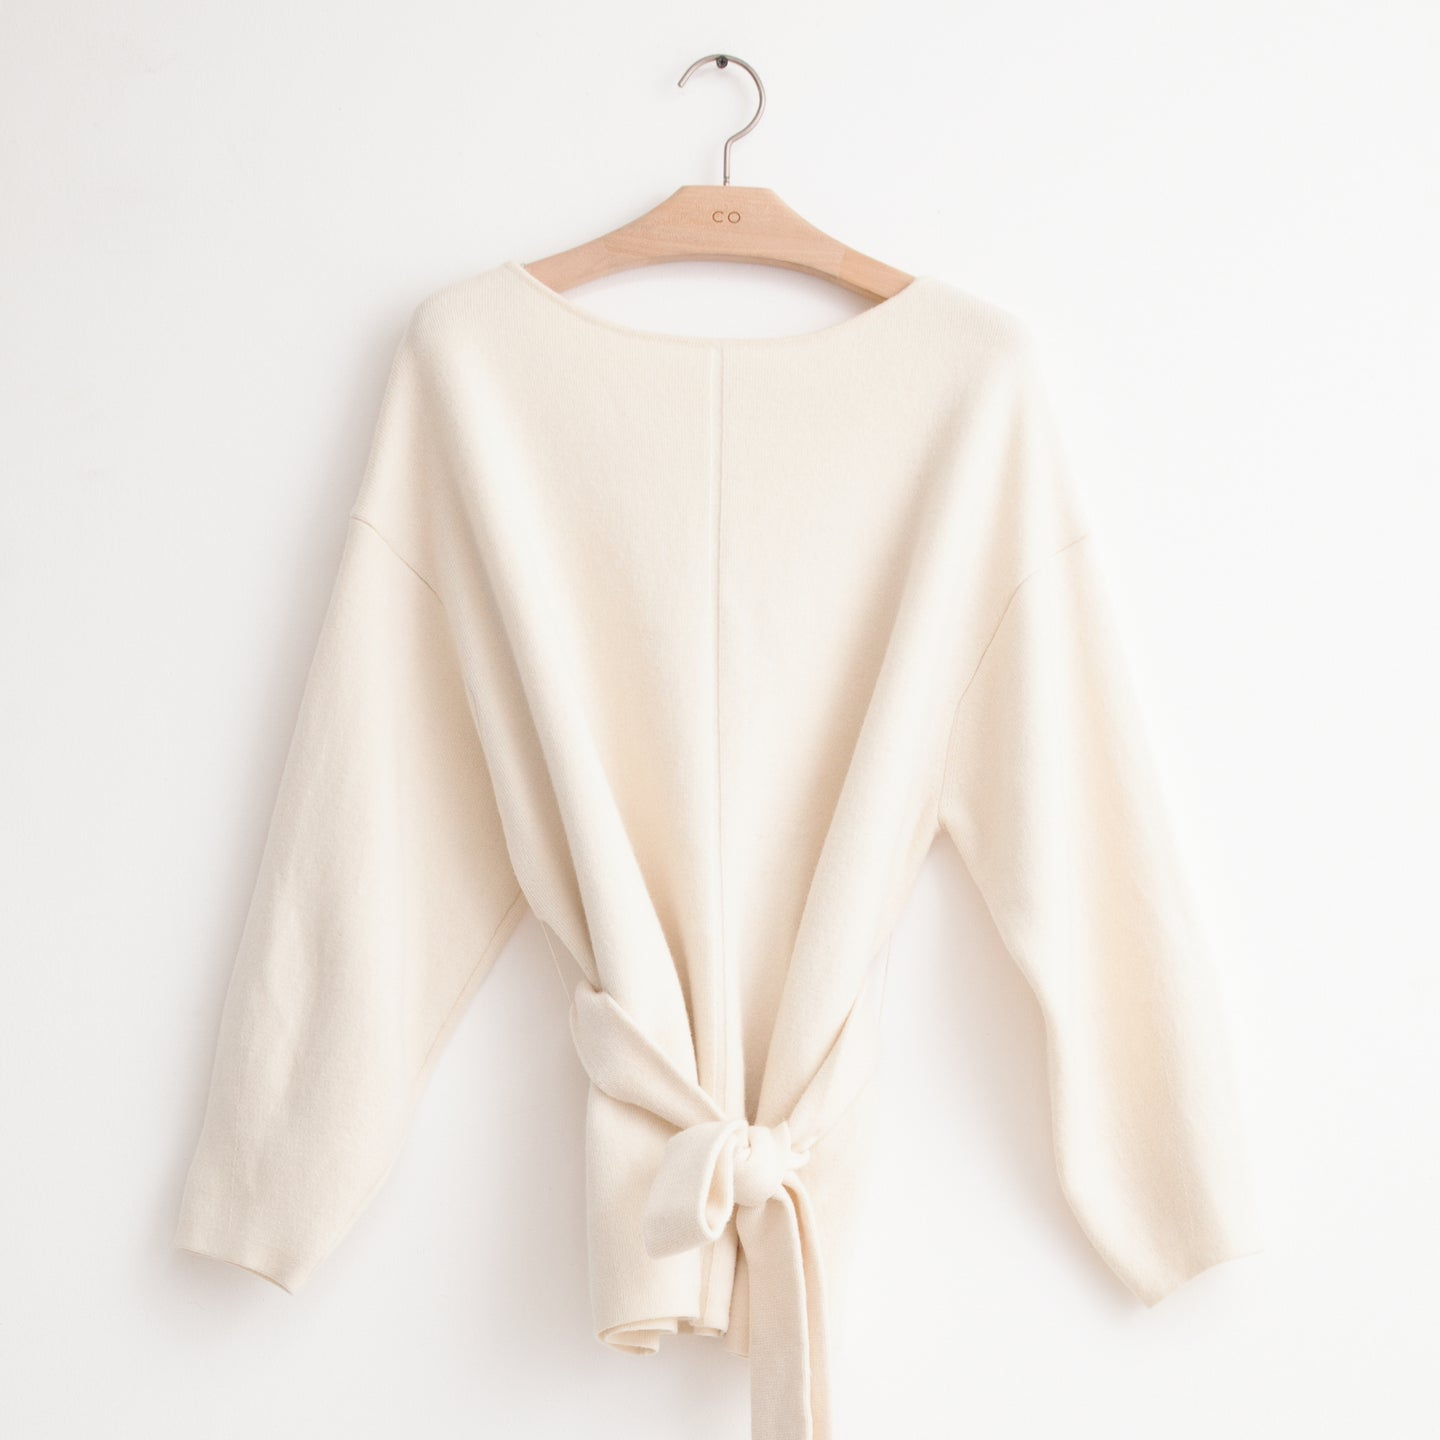 CO - Belted boatneck sweater with front seam detail in ivory wool cashmere